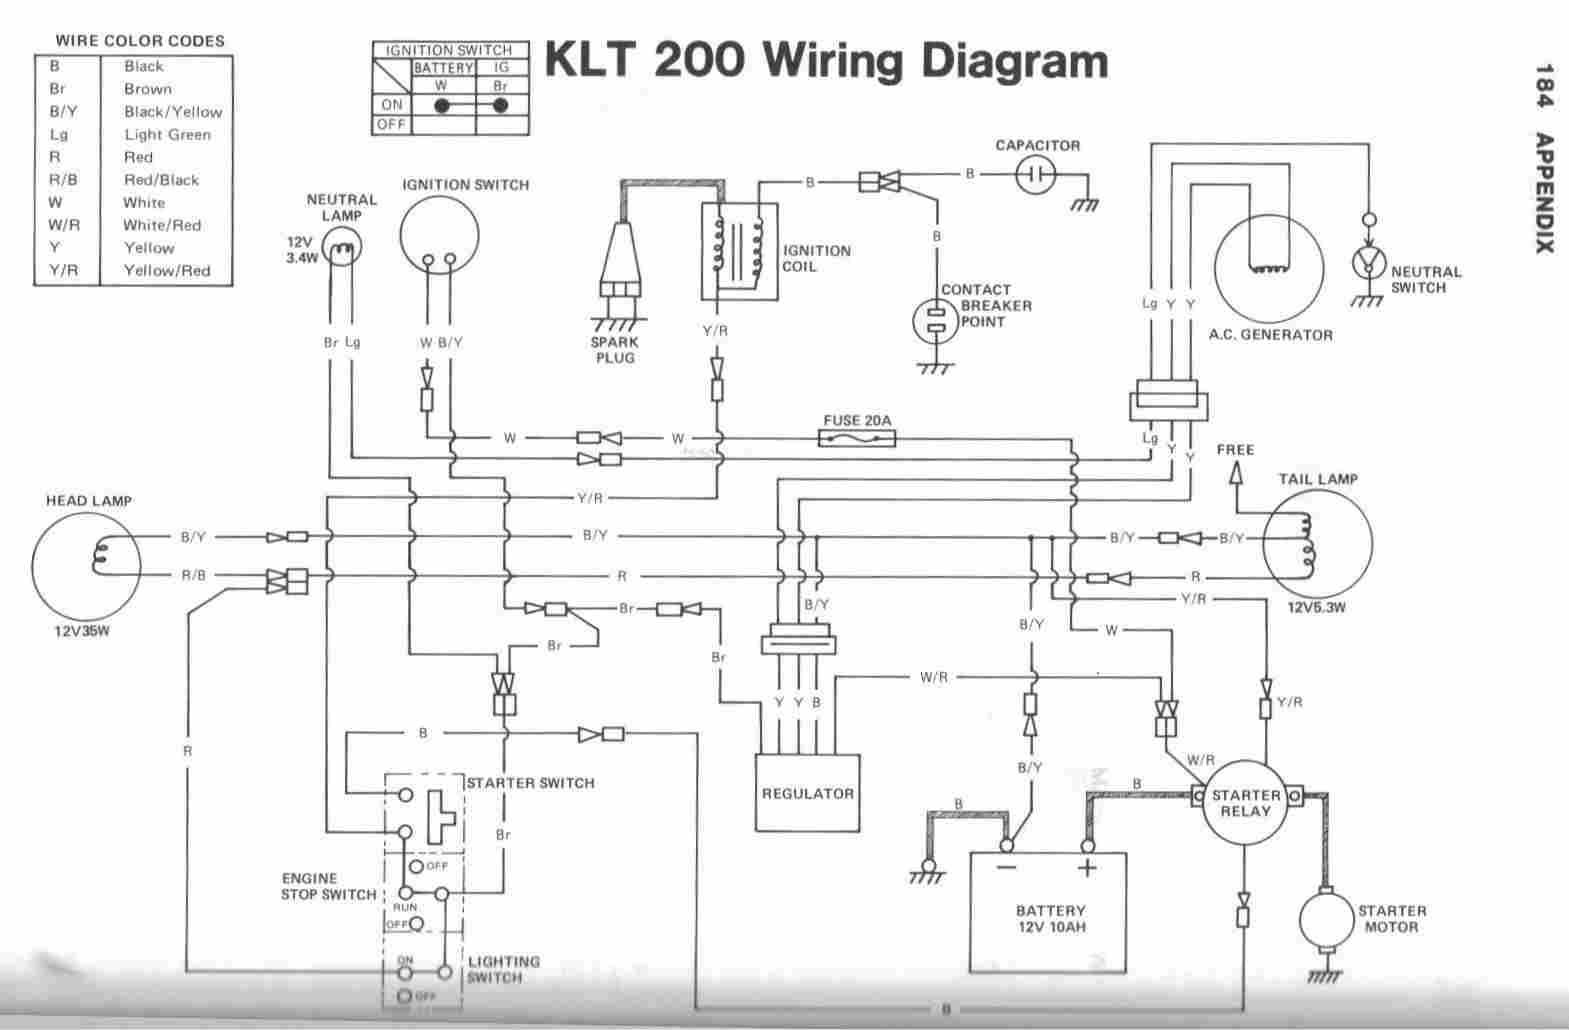 residential electrical wiring diagrams pdf easy routing cool 1992 Jeep Wrangler Wiring Diagram residential electrical wiring diagrams pdf easy routing Body Diagram PDF